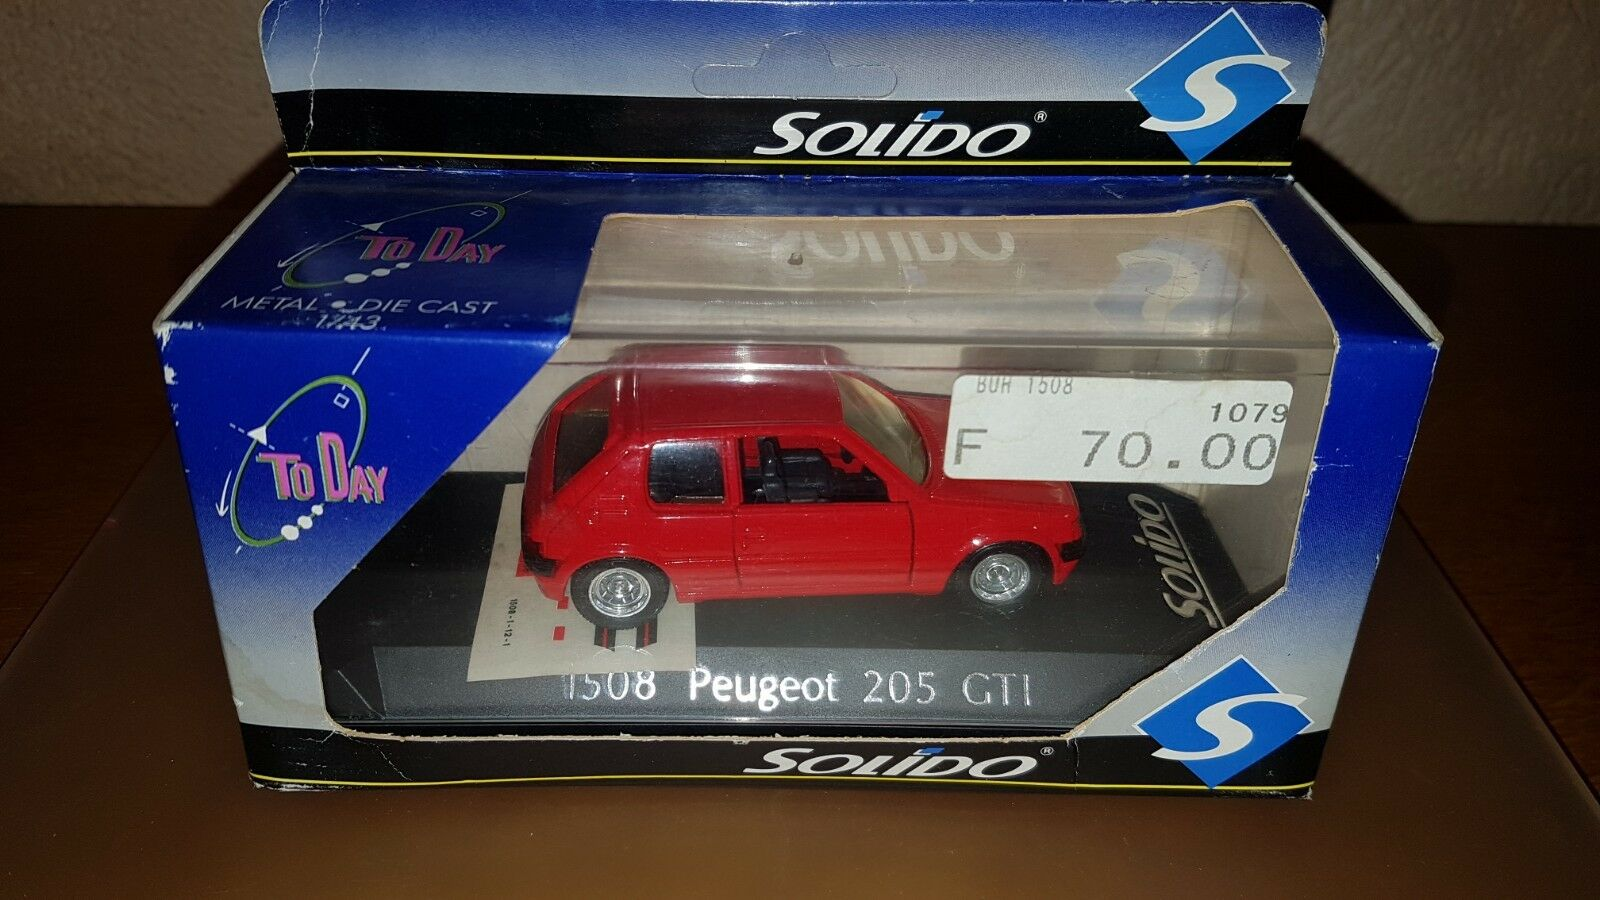 Peugeot 205 GTI ROUGE ROUGE ROUGE - N°1508 - SOLIDO TO DAY 1d7412